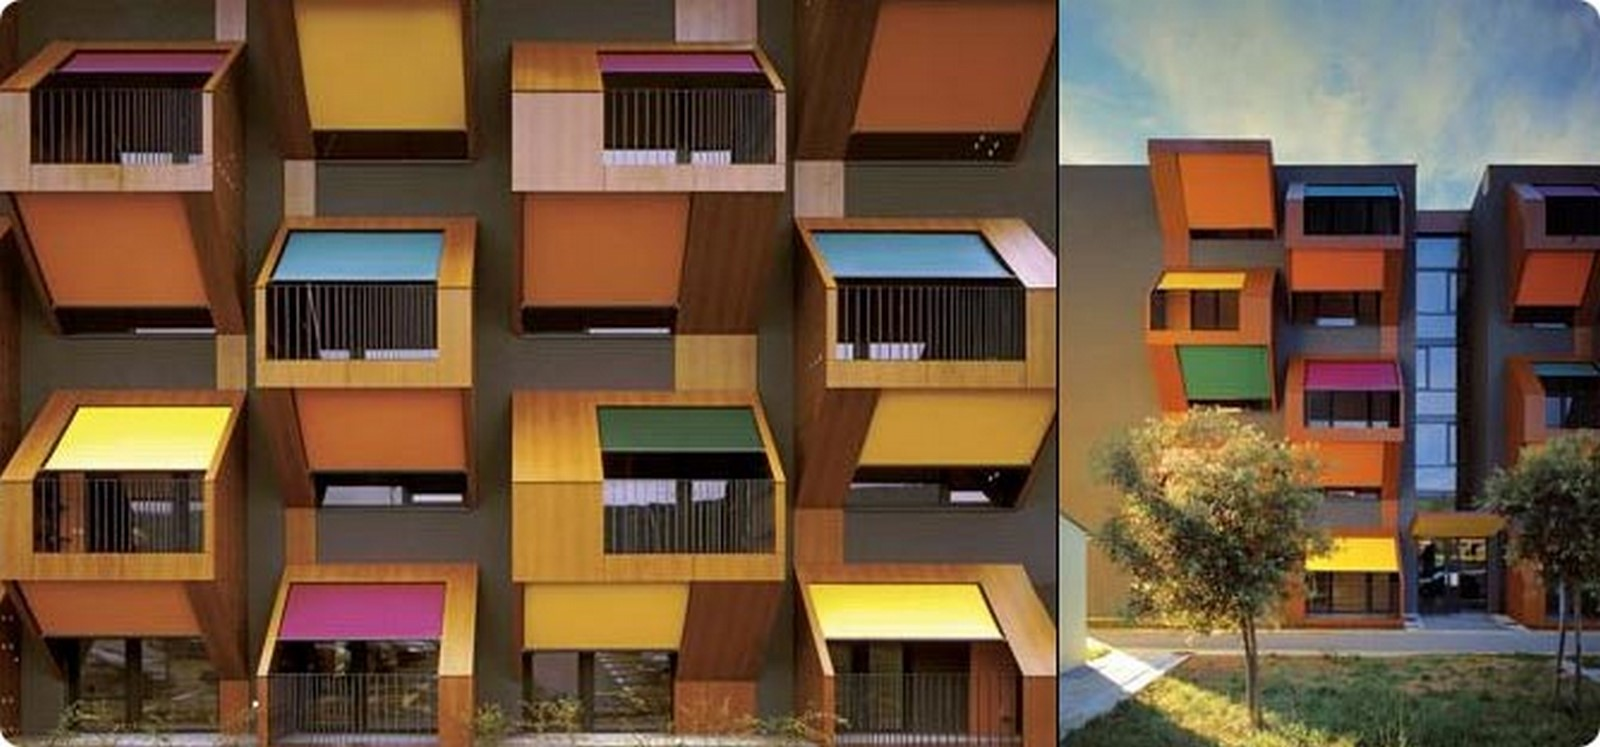 10 Examples of unique balcony architecture - Sheet2